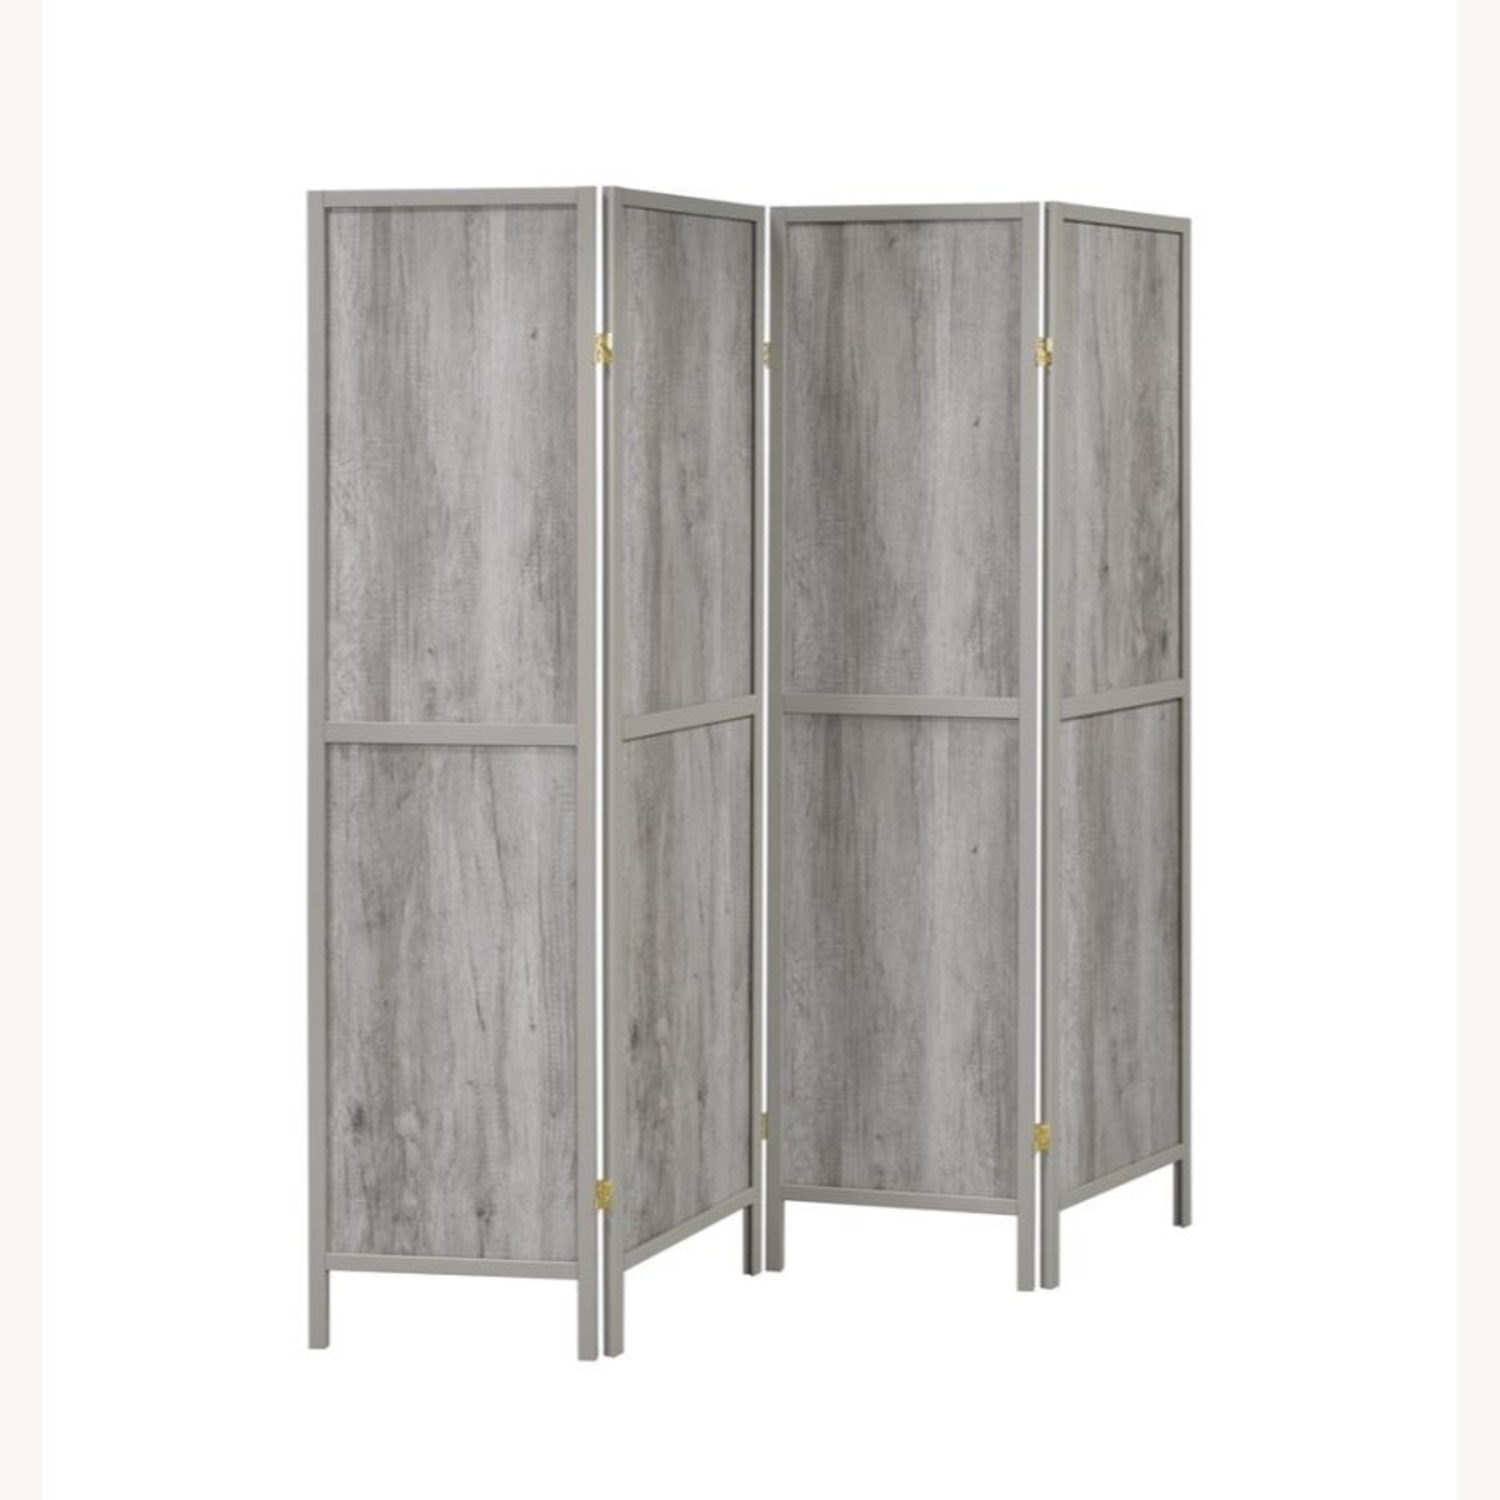 Four-Panel Folding Screen In Grey Driftwood Finish - image-0